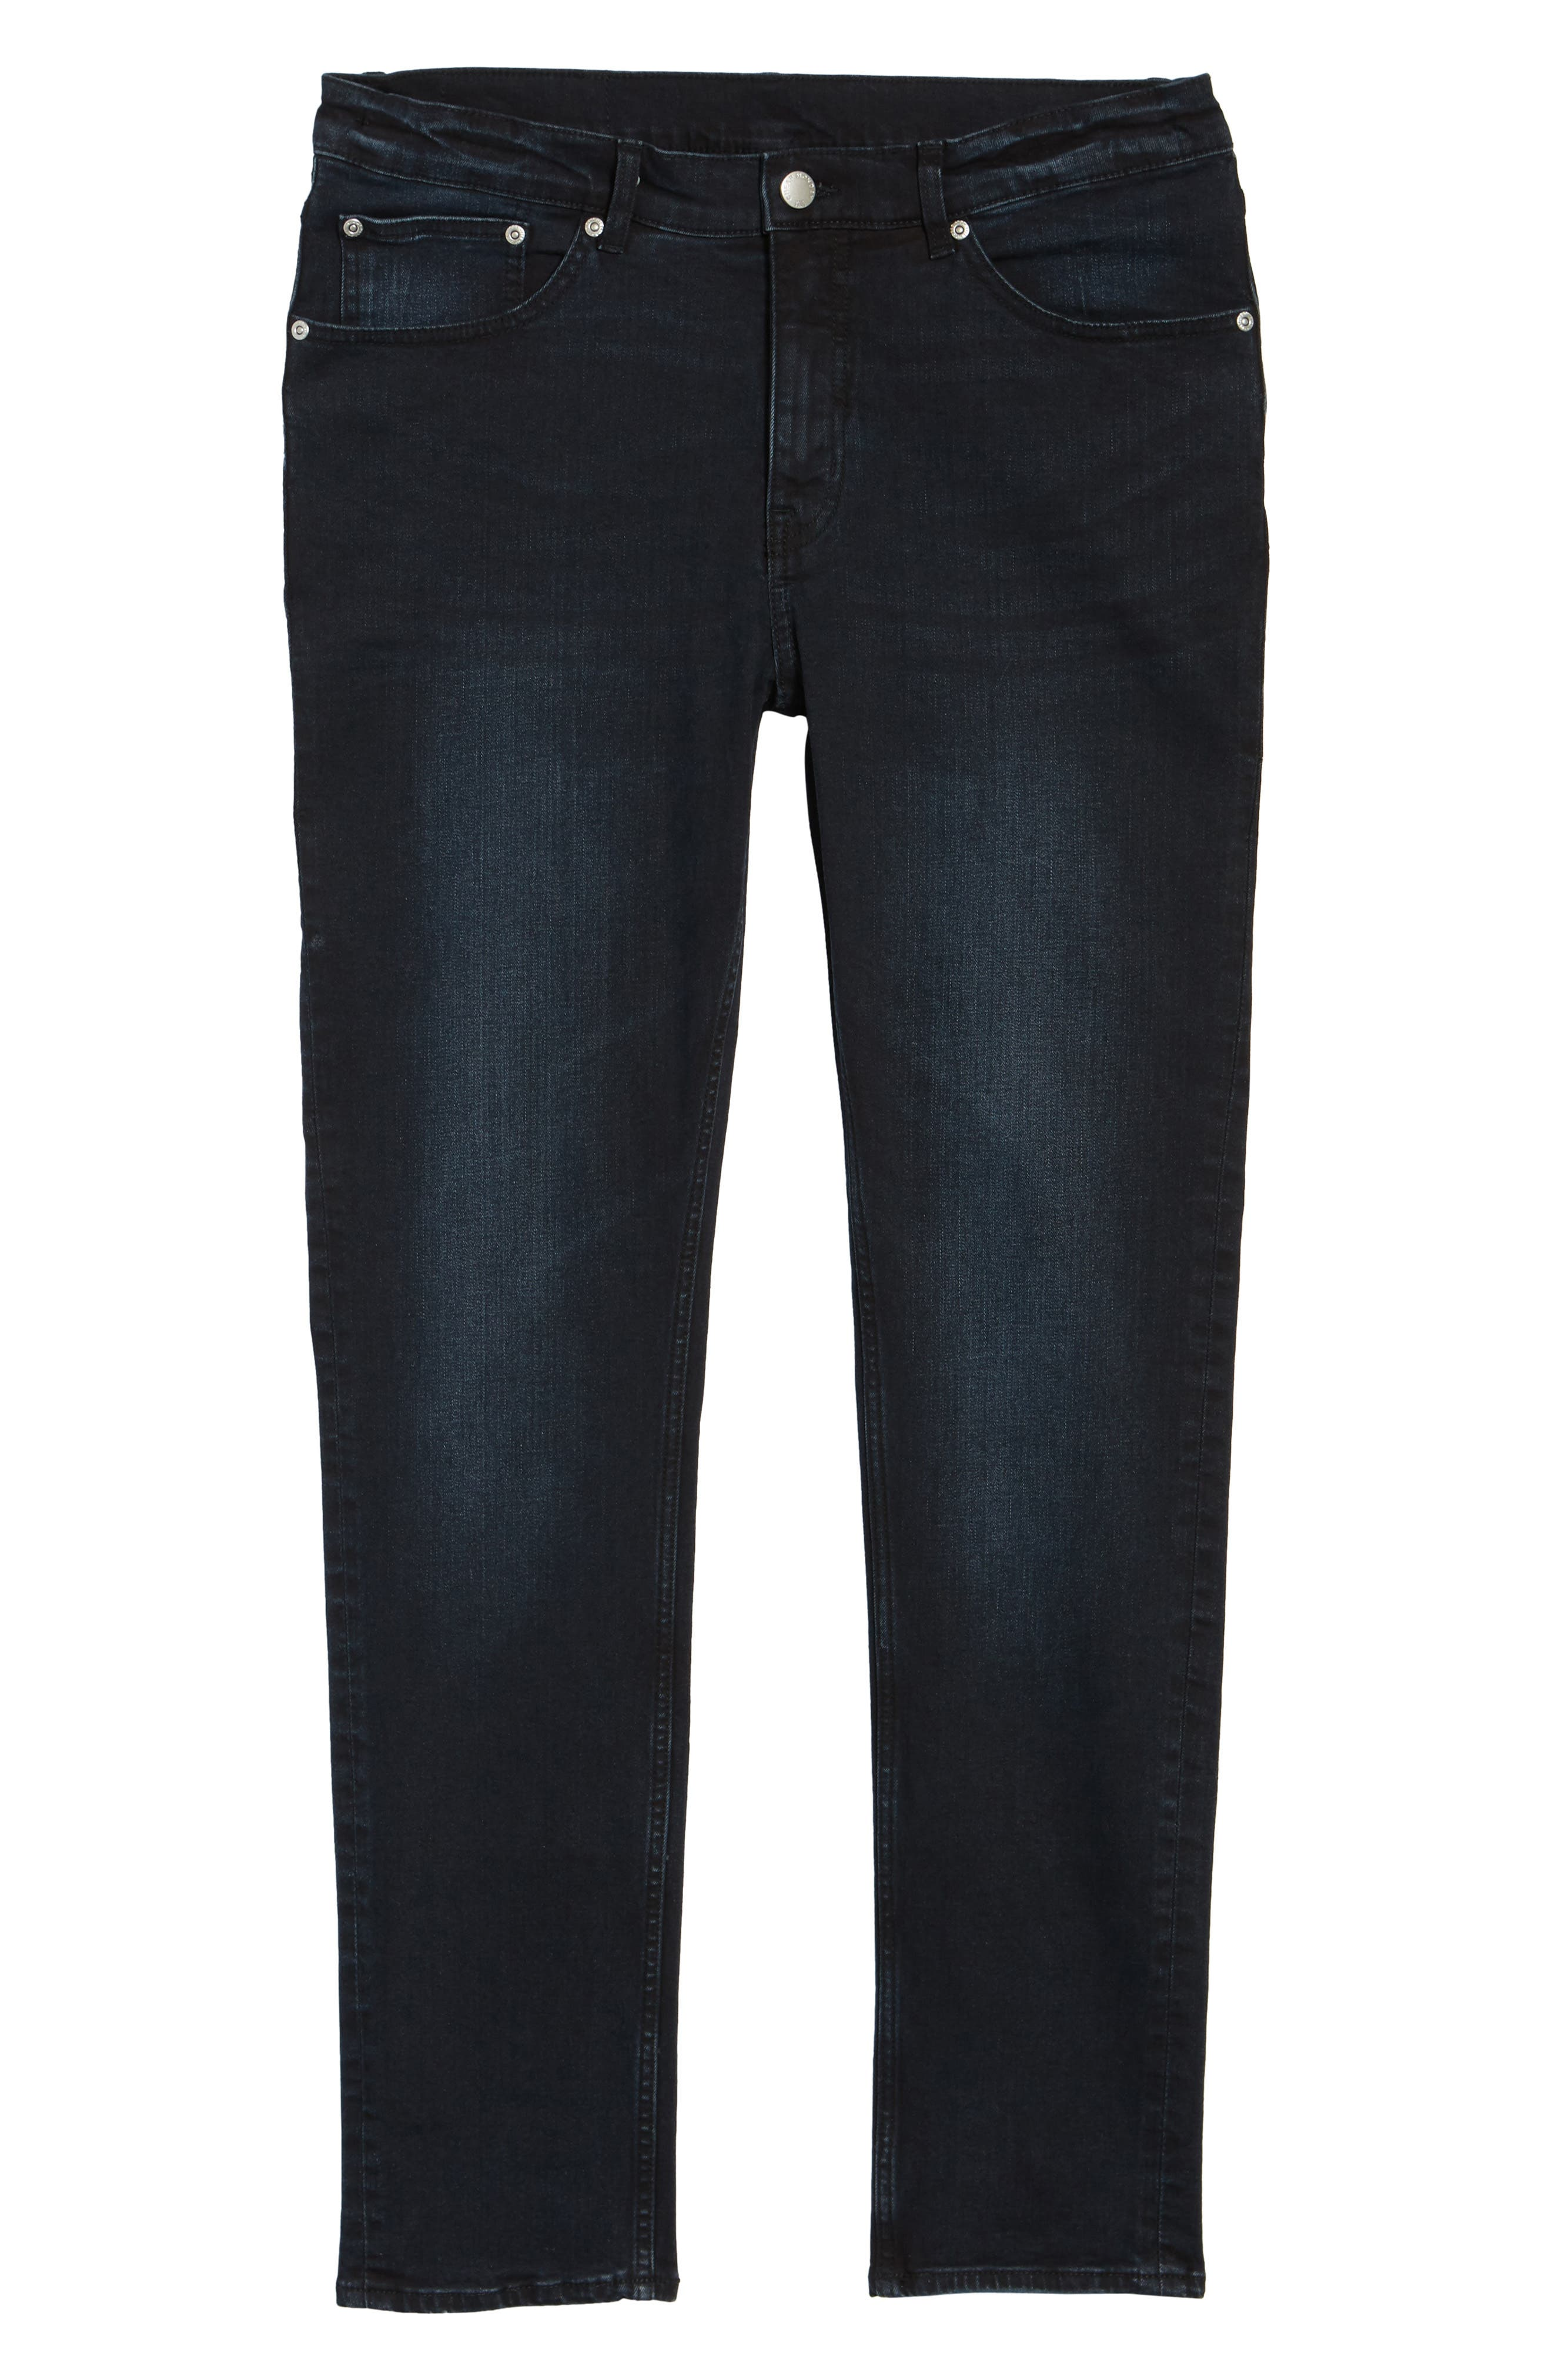 Sonic Skinny Fit Jeans,                             Alternate thumbnail 6, color,                             402